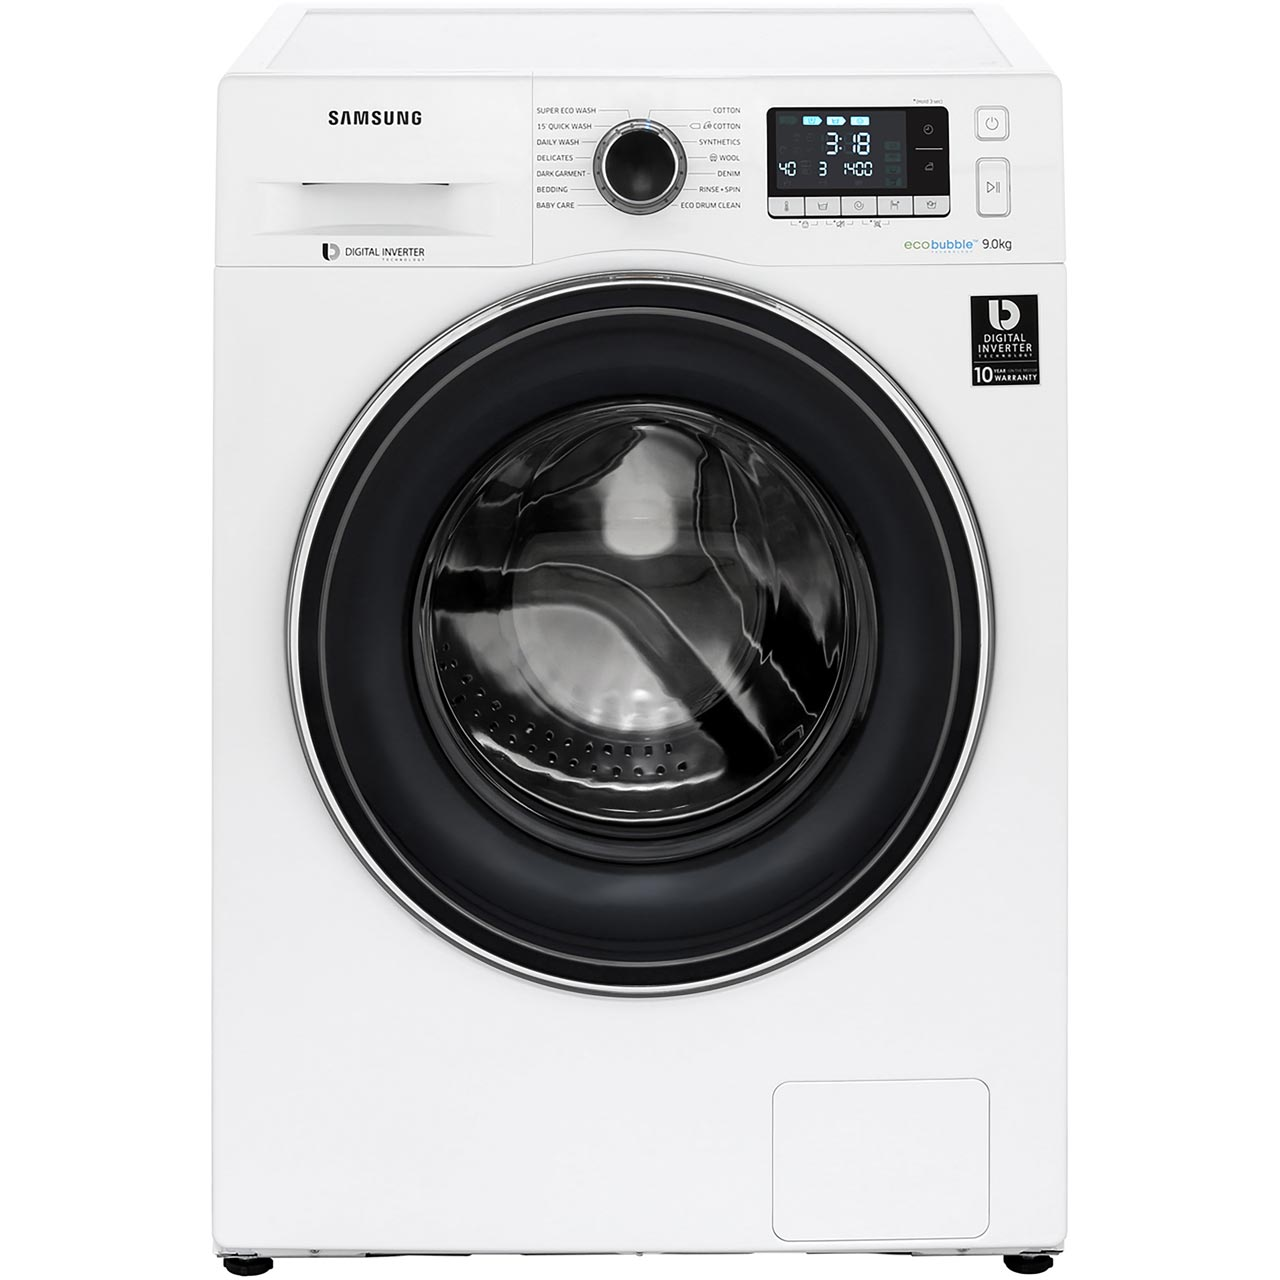 Samsung Ww90j5456fw Ecobubble U2122 A    Rated 9kg 1400 Rpm